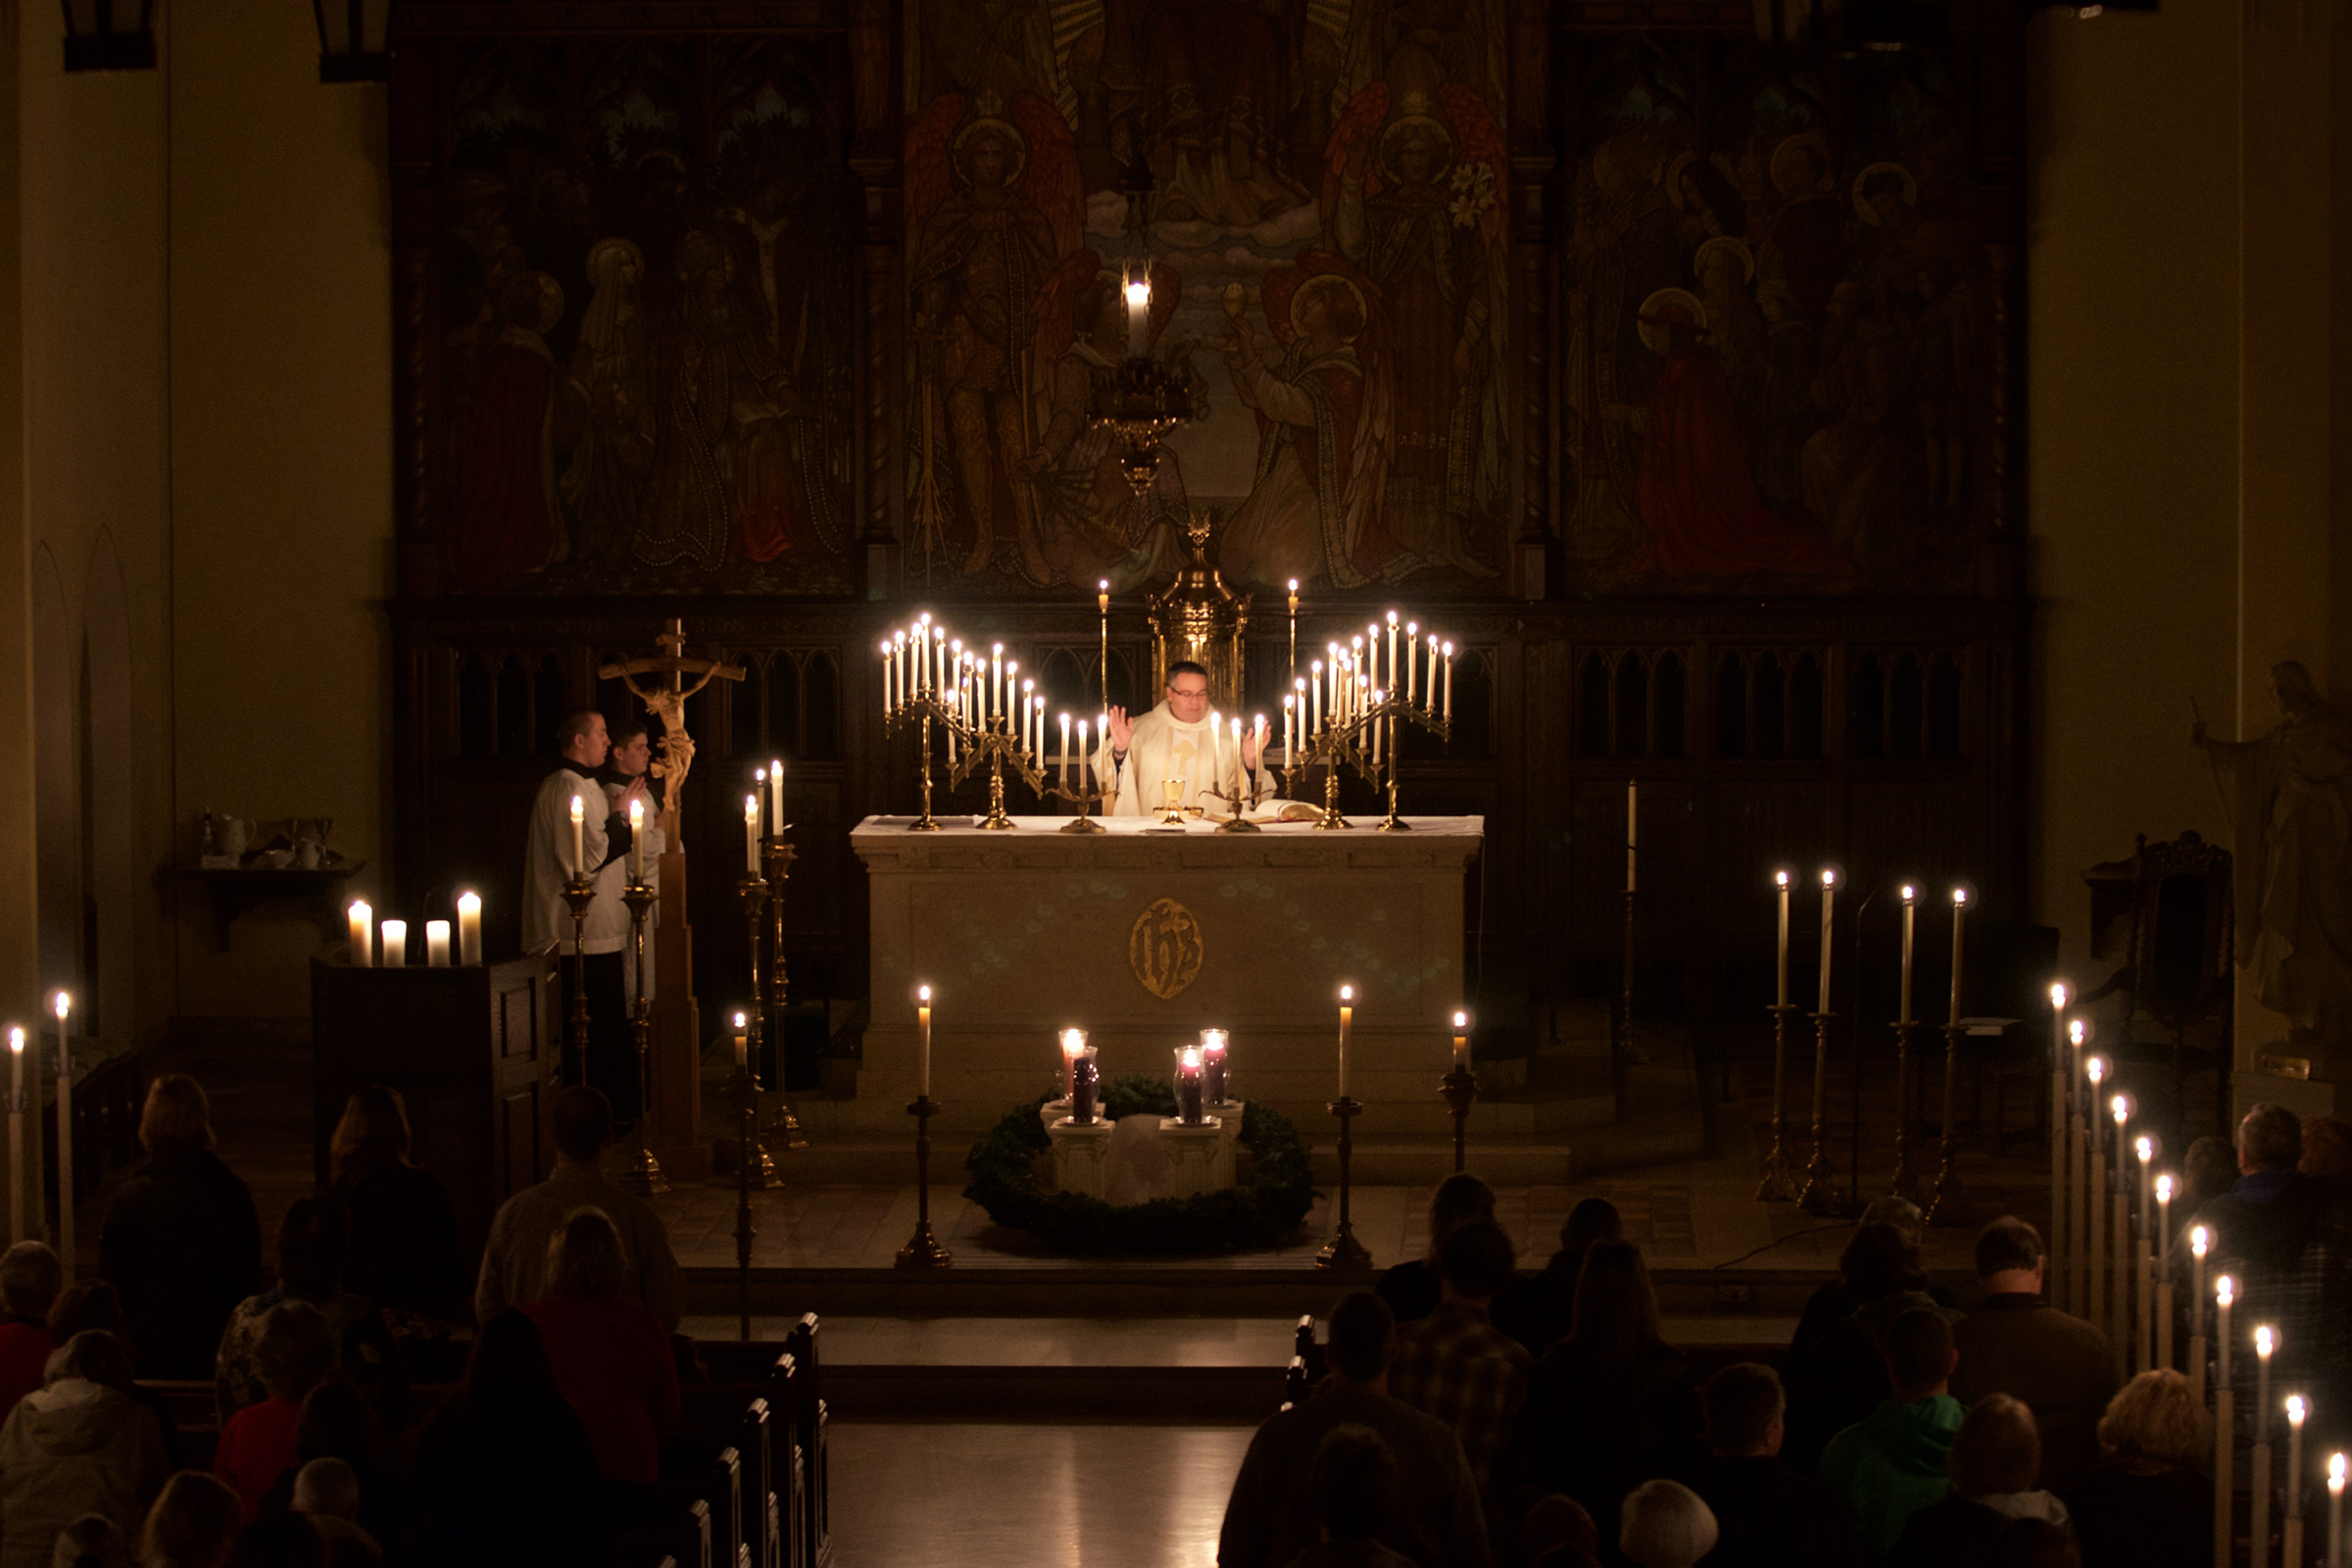 web-rorate-mass-dark-candles-jeff-geerling-cc